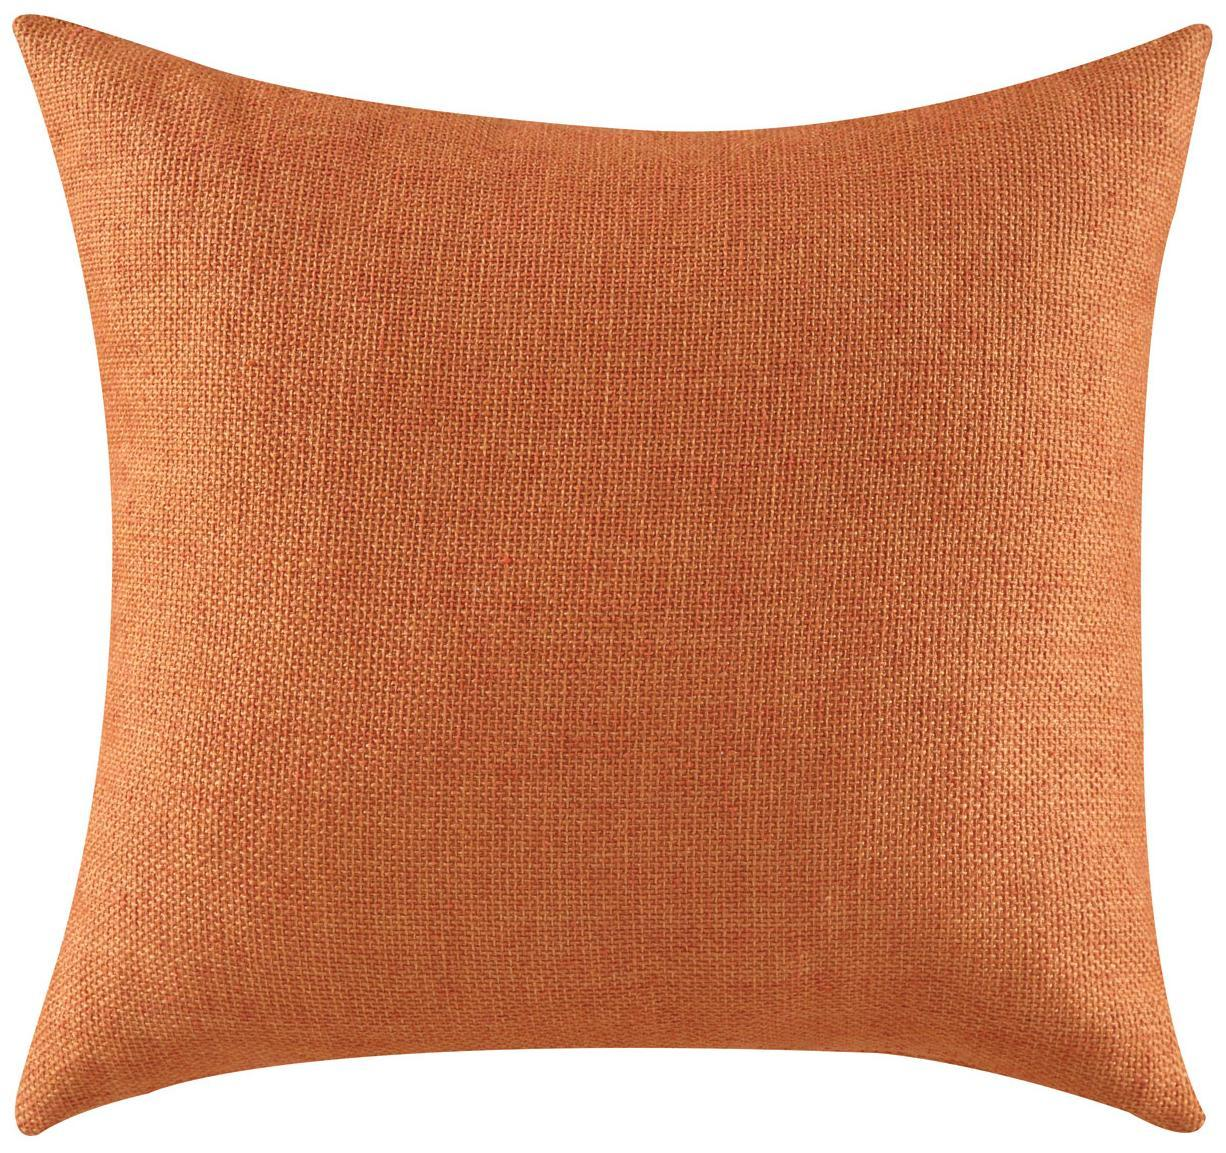 Throw Pillows With Orange : Throw Pillows Textured Orange Accent Pillow from Coaster Beverly Hills Furniture in Jamaica ...